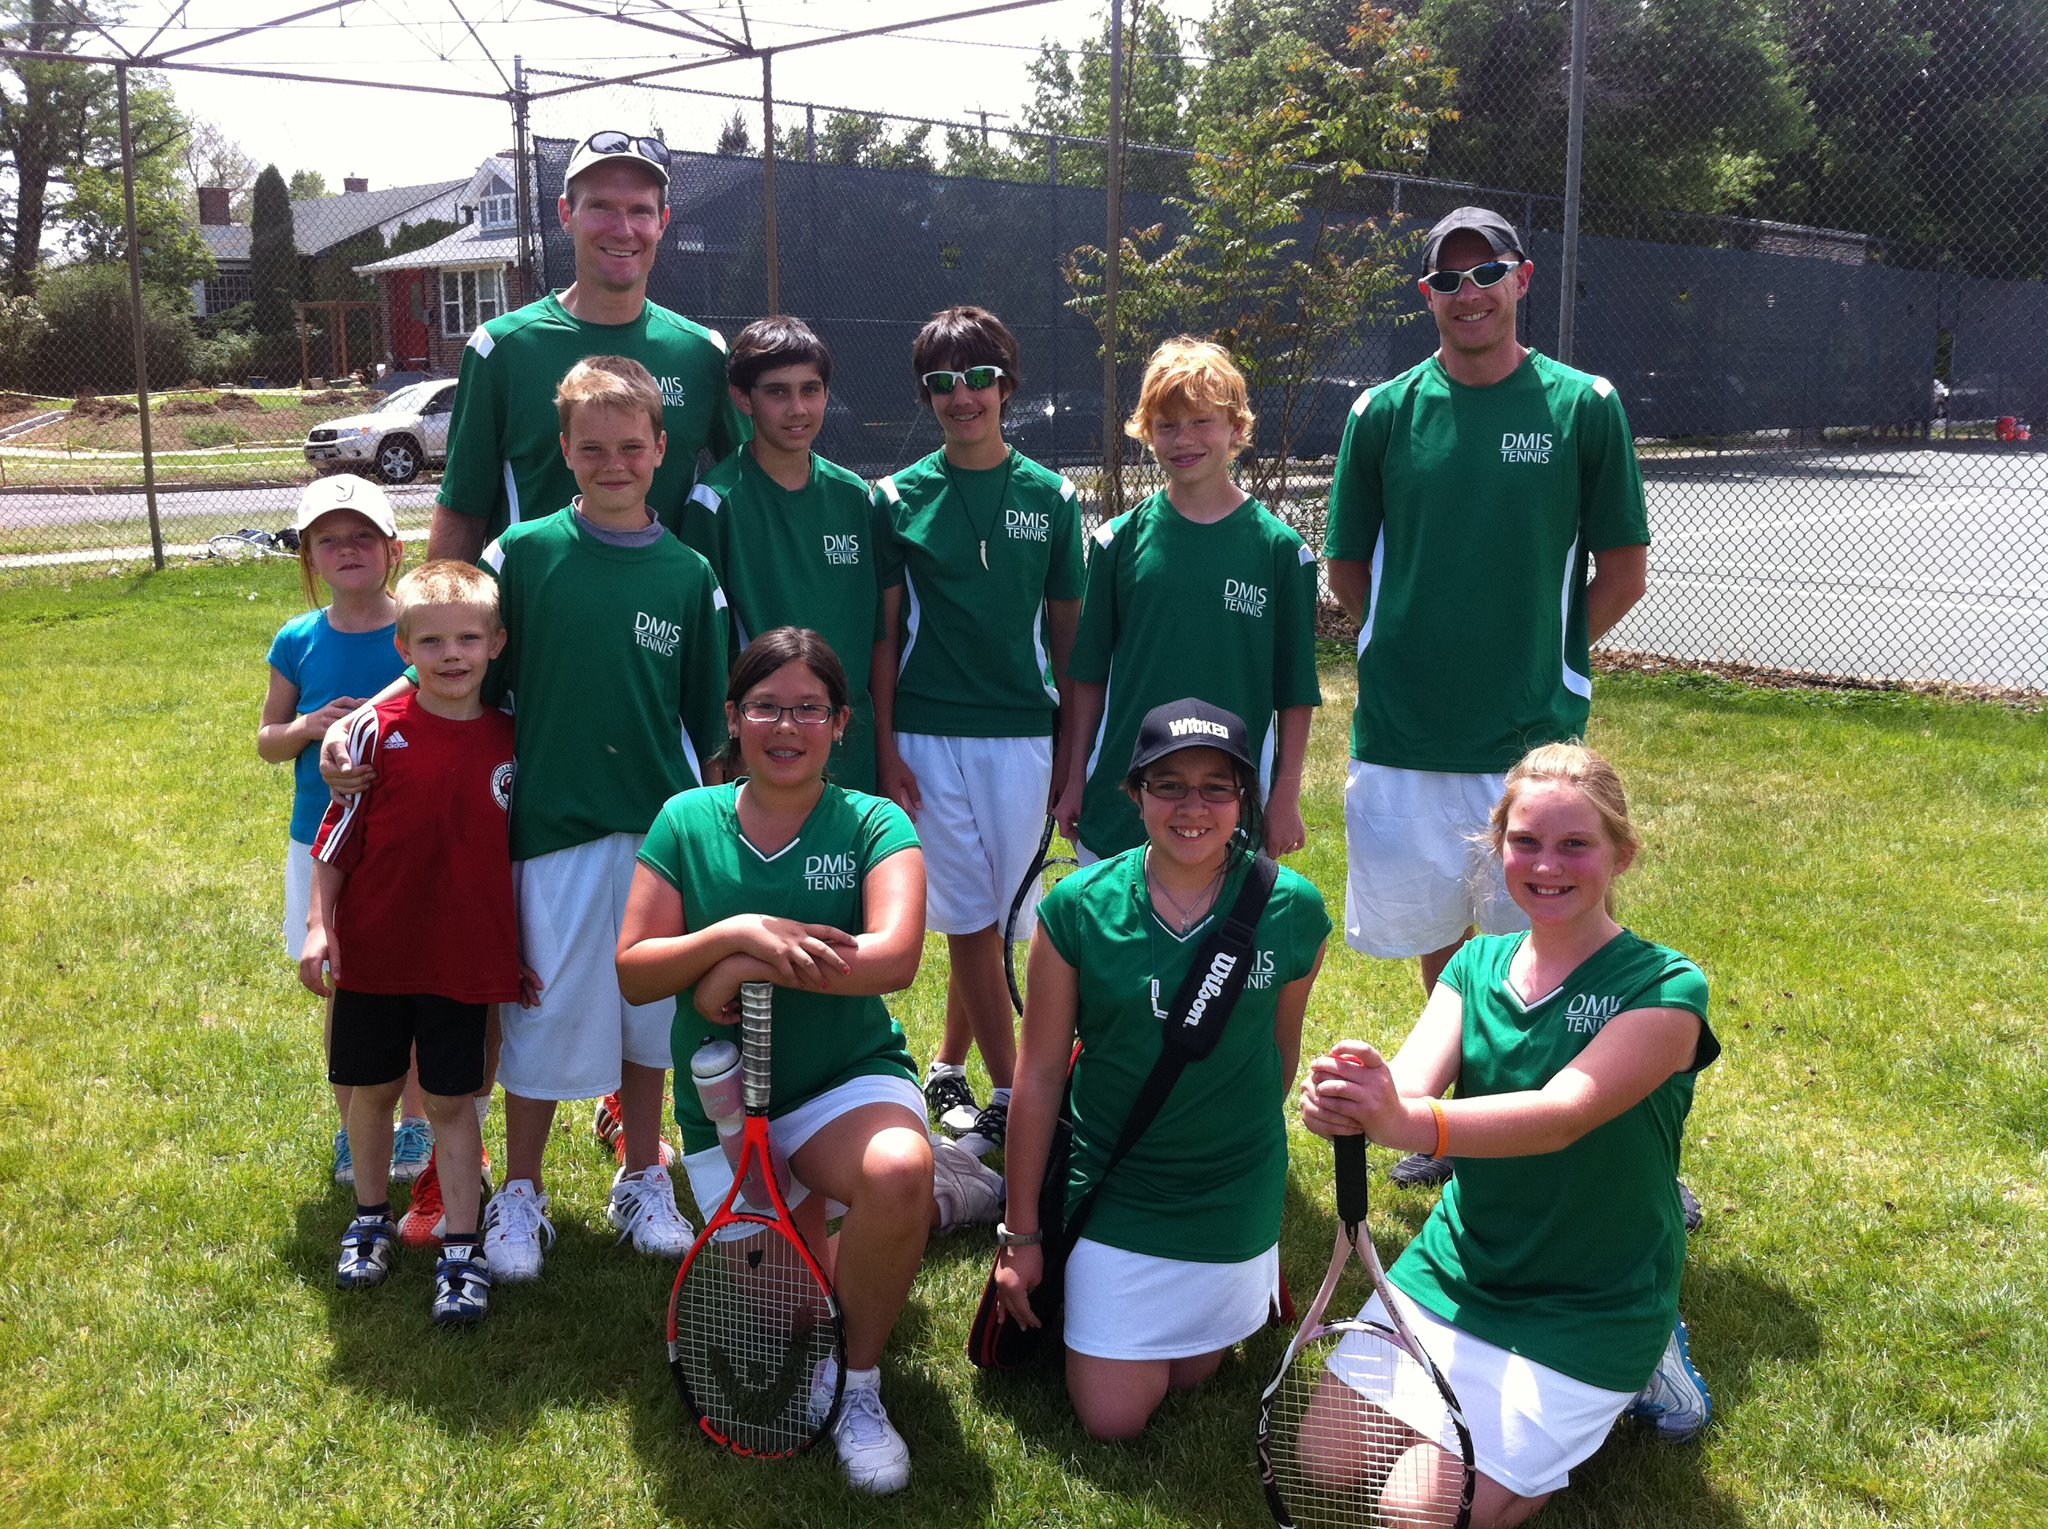 Middle school tennis, anyone?